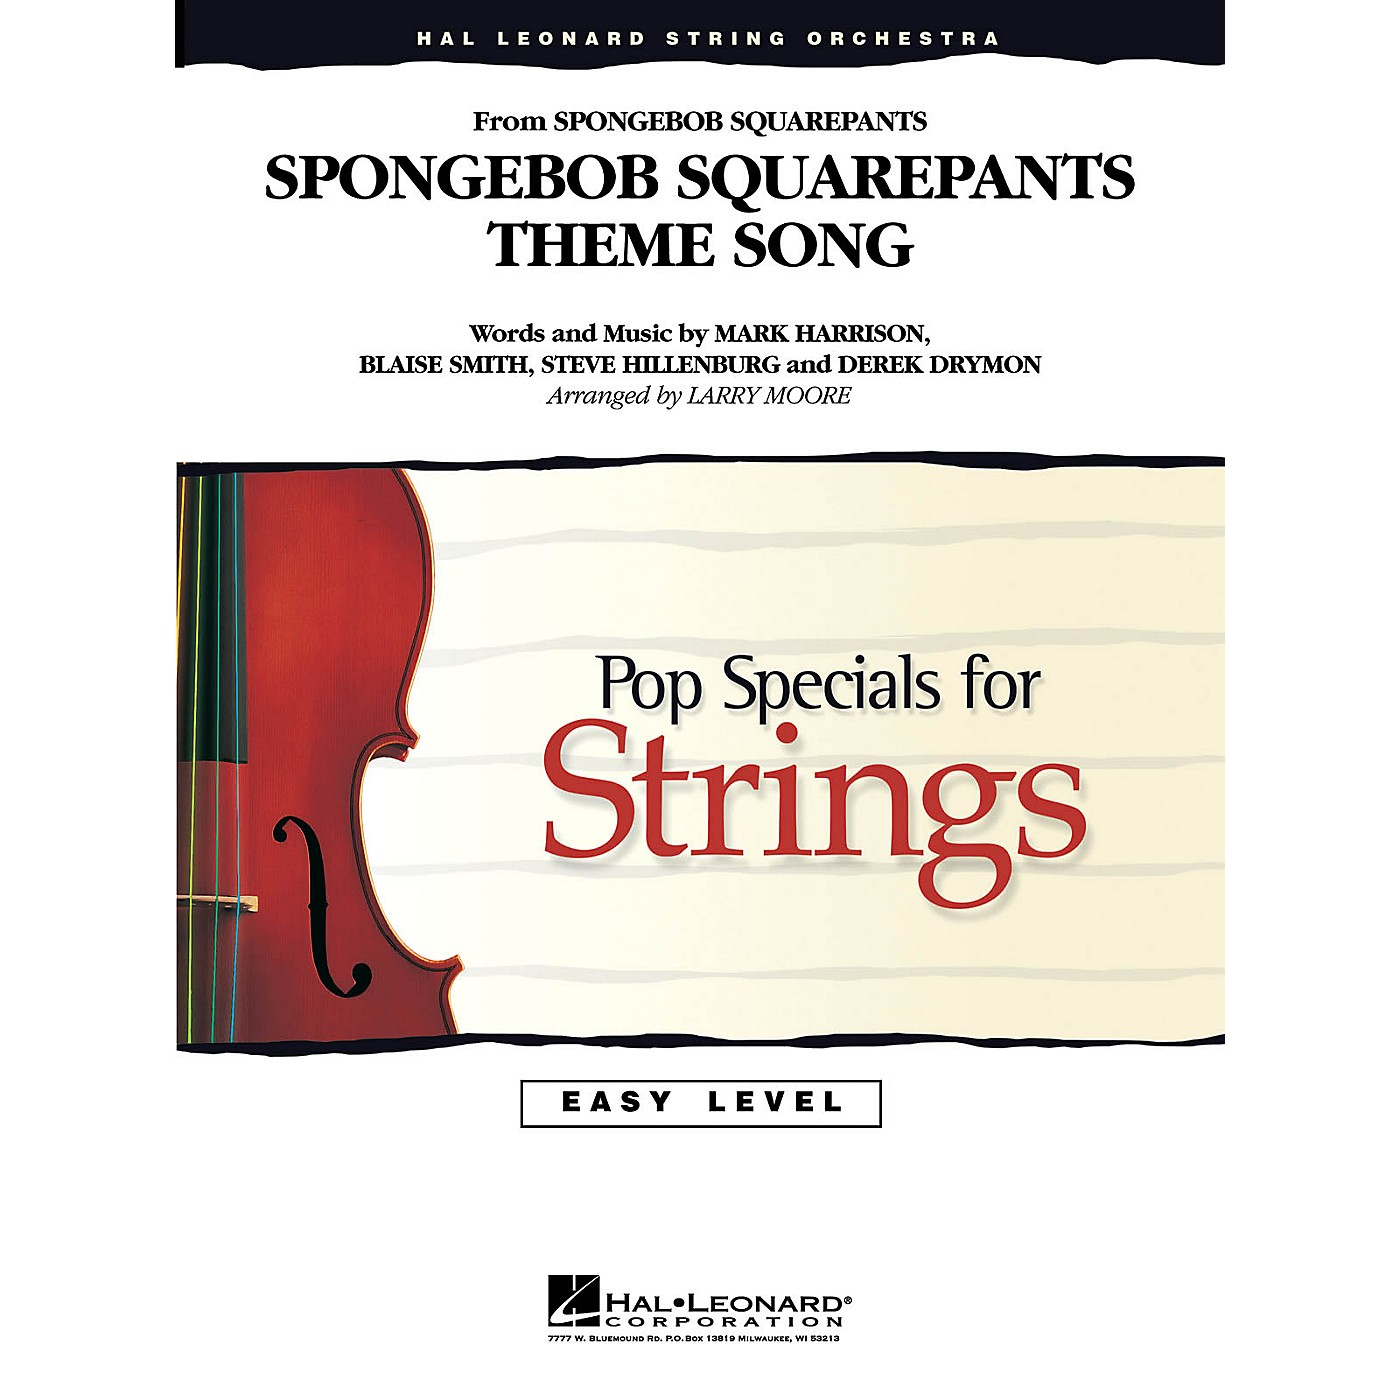 Hal Leonard Spongebob Squarepants (Theme) (Score and Parts) Easy Pop Specials For Strings Series by Larry Moore thumbnail